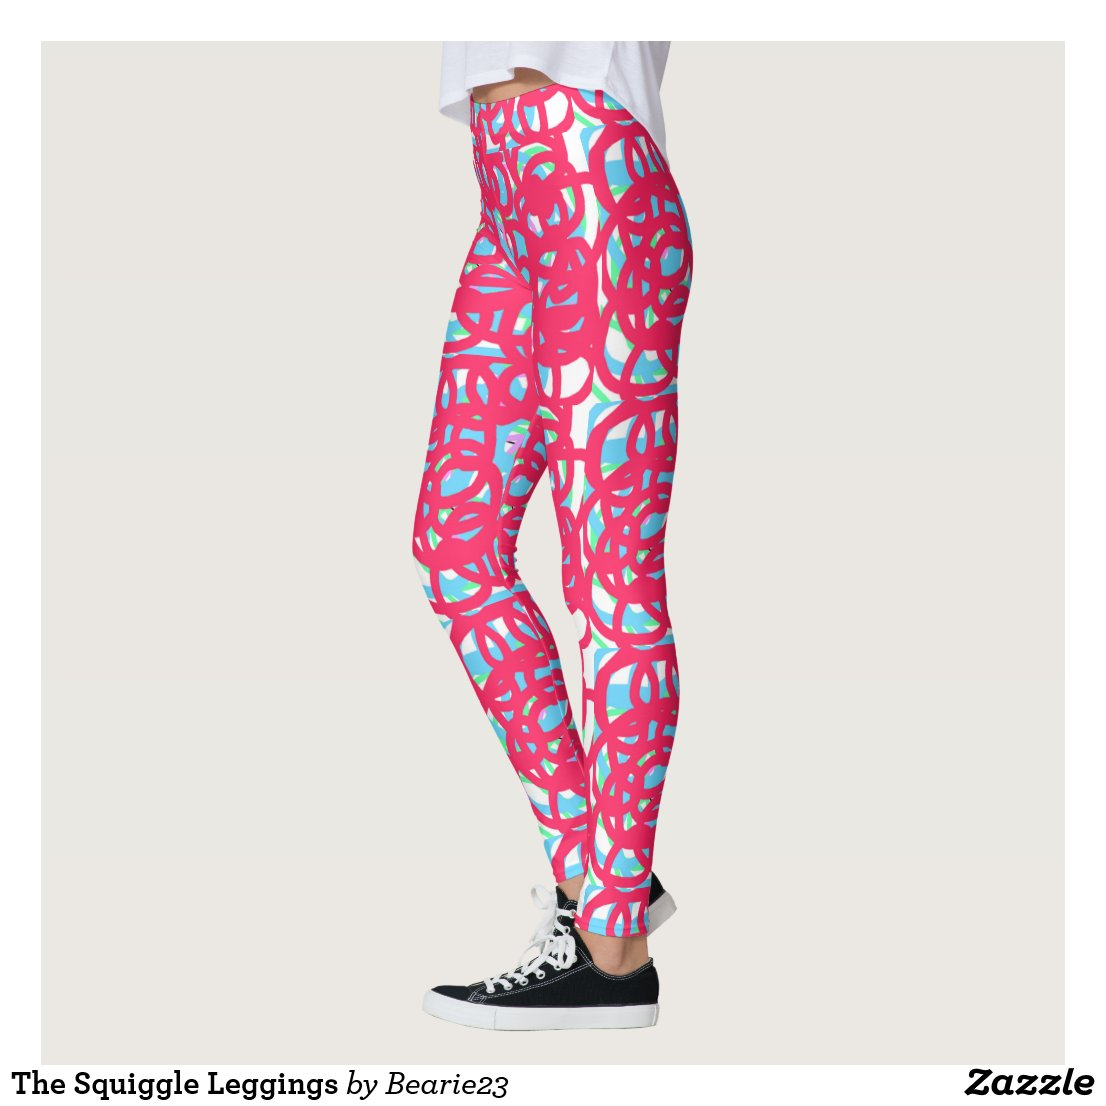 The Squiggle Leggings